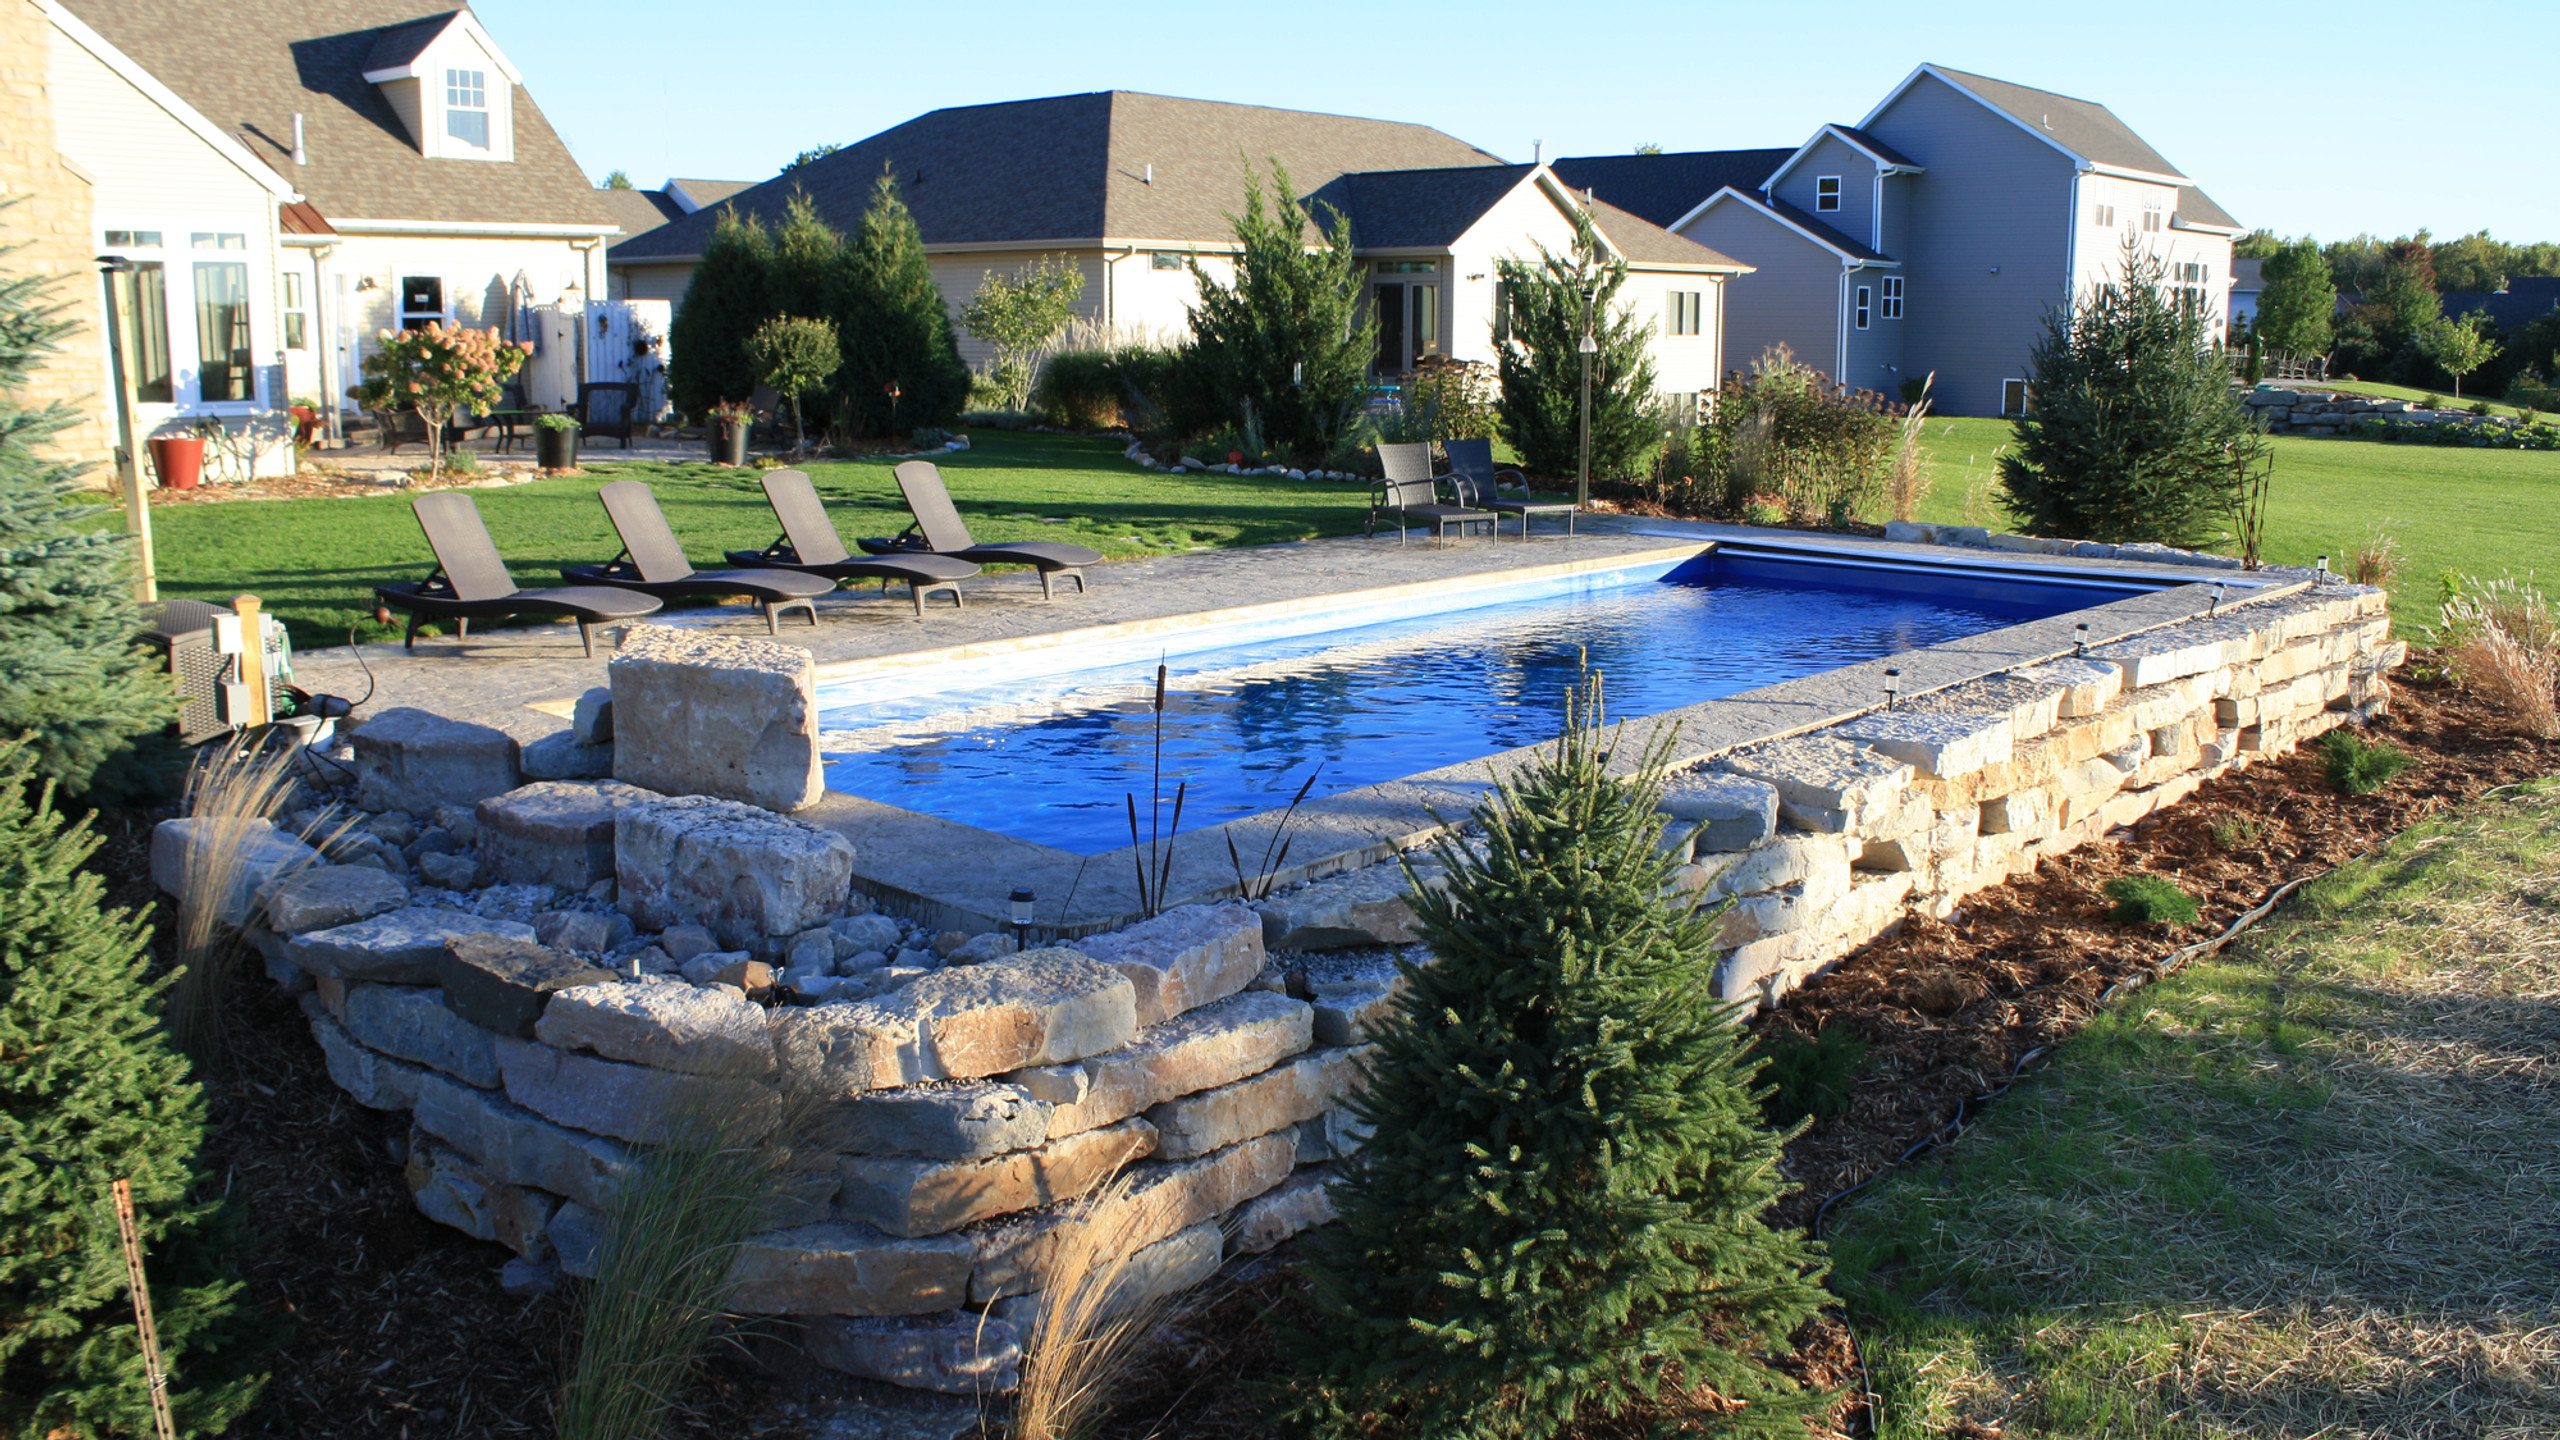 APSP Gold Award for residential fiberglass pool in Ledgeview WI